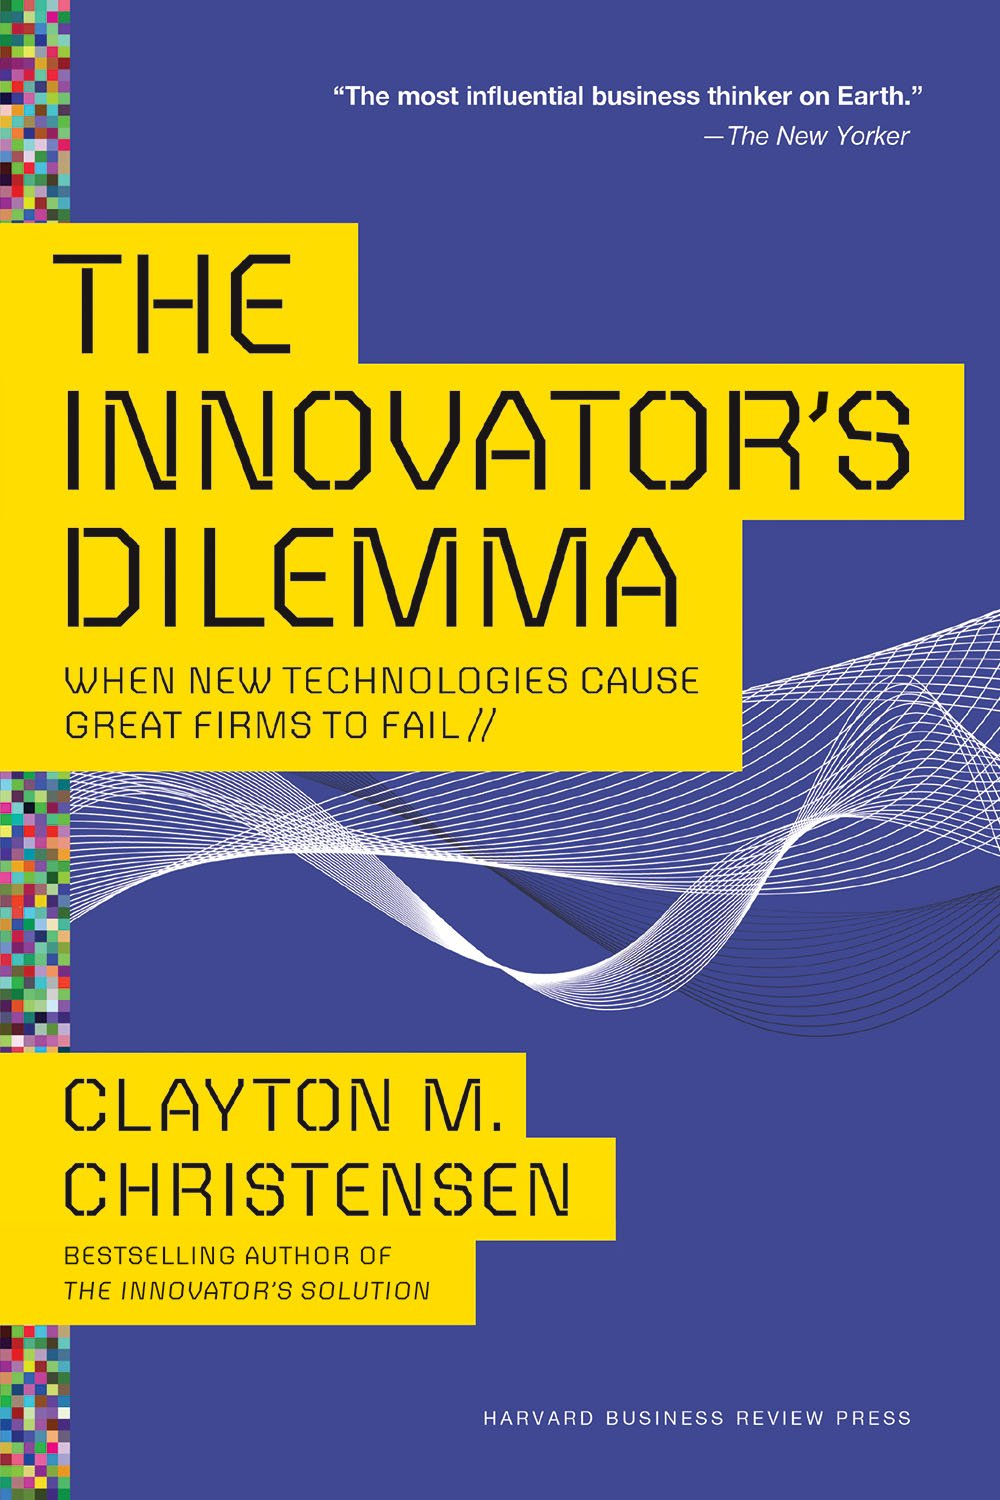 The Innovator's Dilemma: When New Technologies Cause Great Firms to Fail (Management of Innovation and Change): Amazon.co.uk: Christensen, Clayton M: 9781633691780: Books